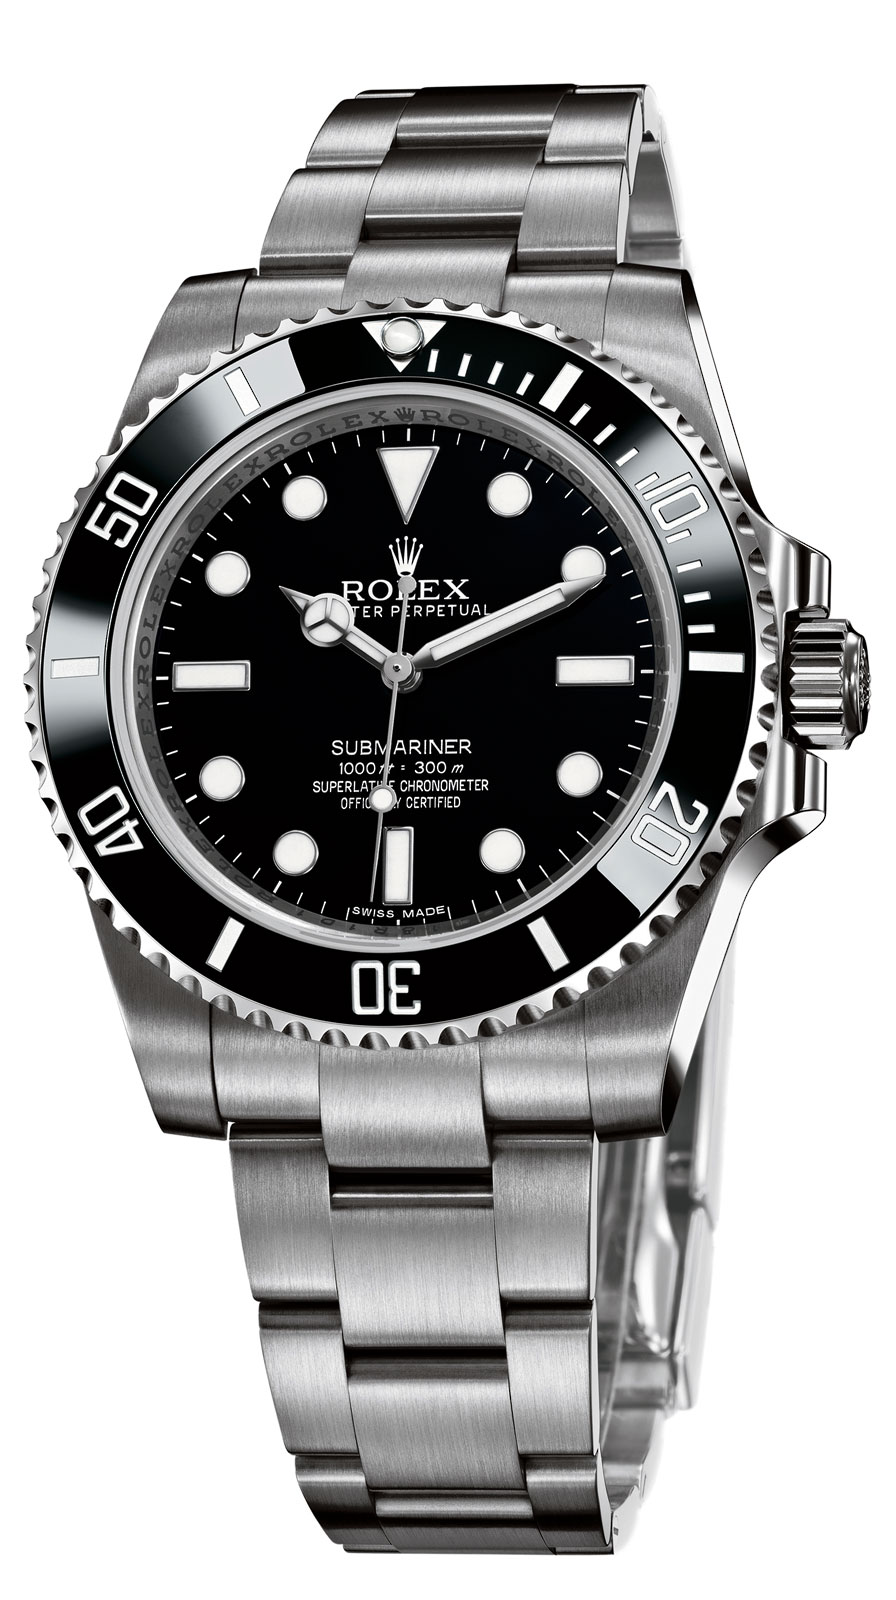 Rolex Watches Price List